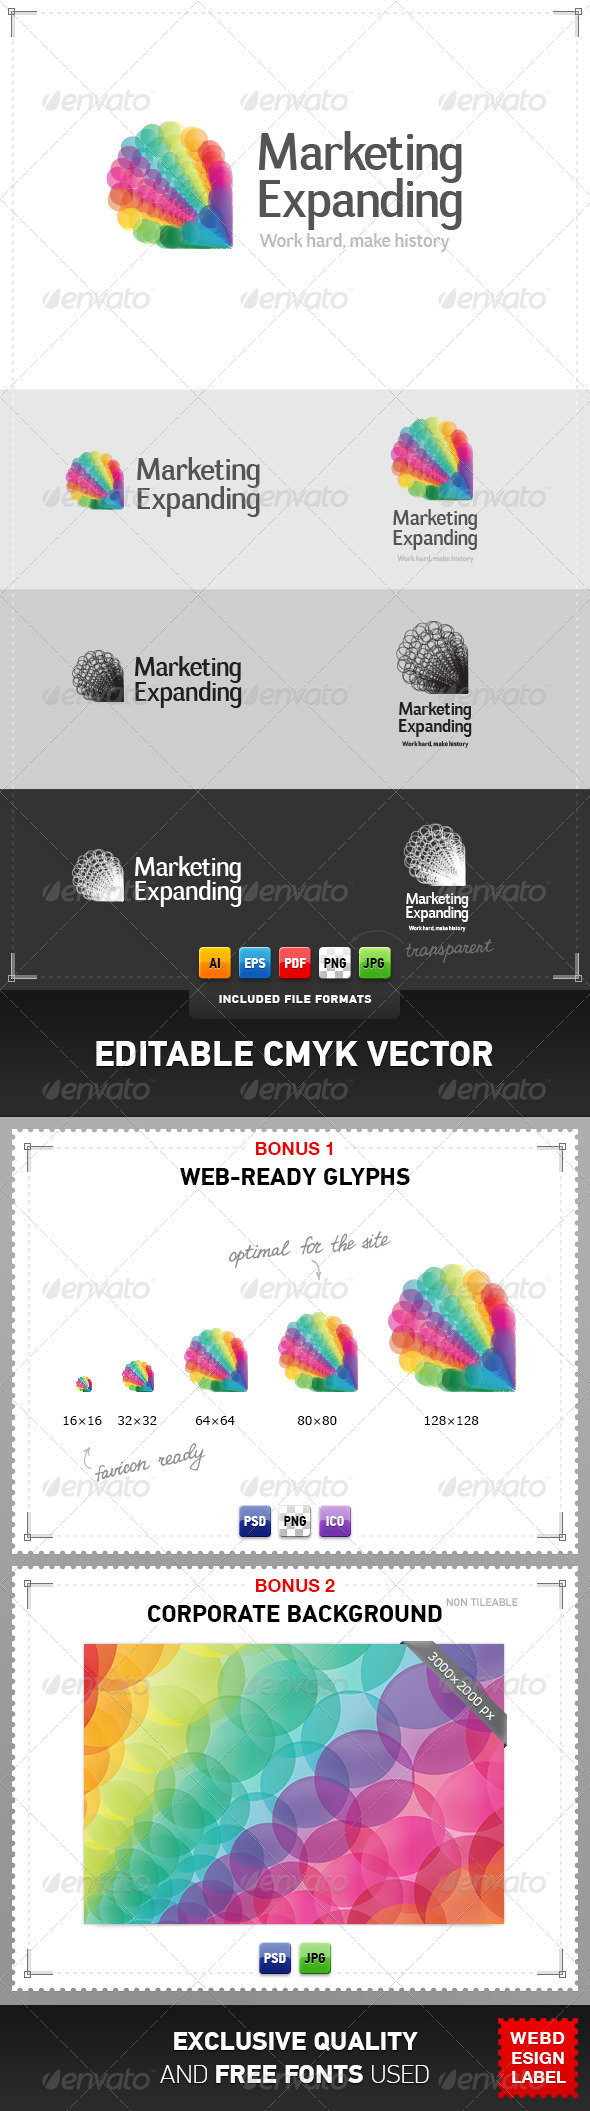 GraphicRiver Marketing Expanding Logo 4047583